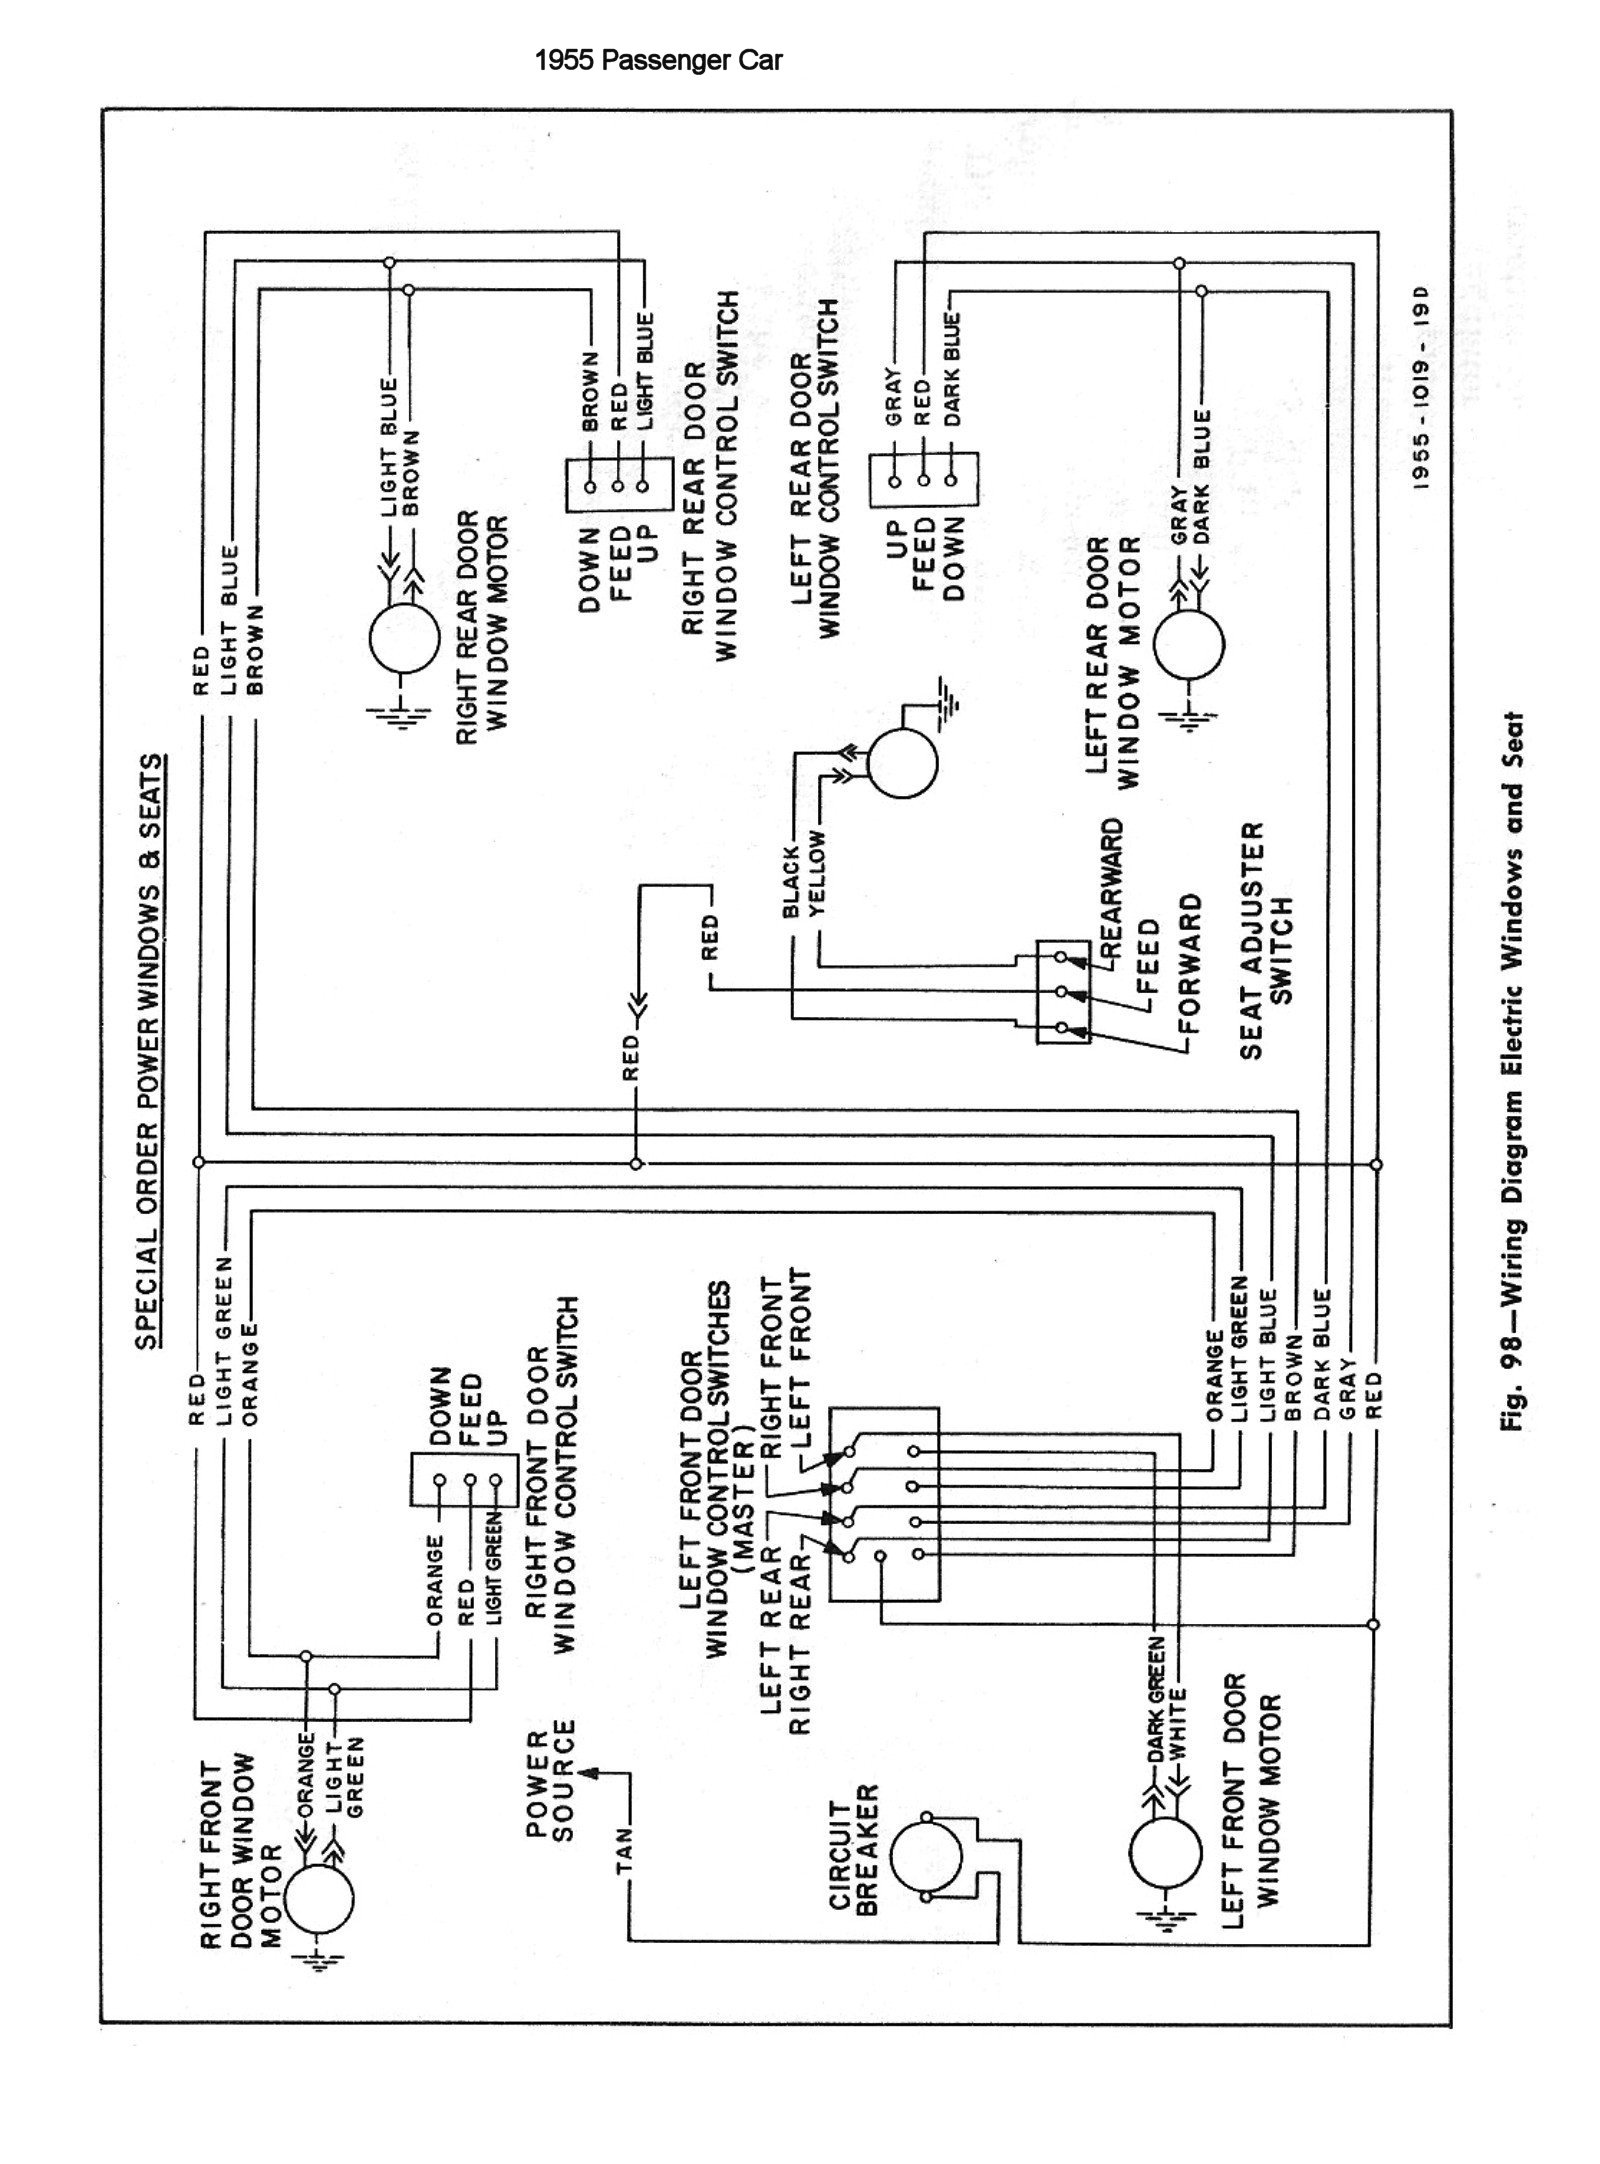 WRG-8538] 75 Gmc Pickup Wiring Diagram Dimmer Switch on